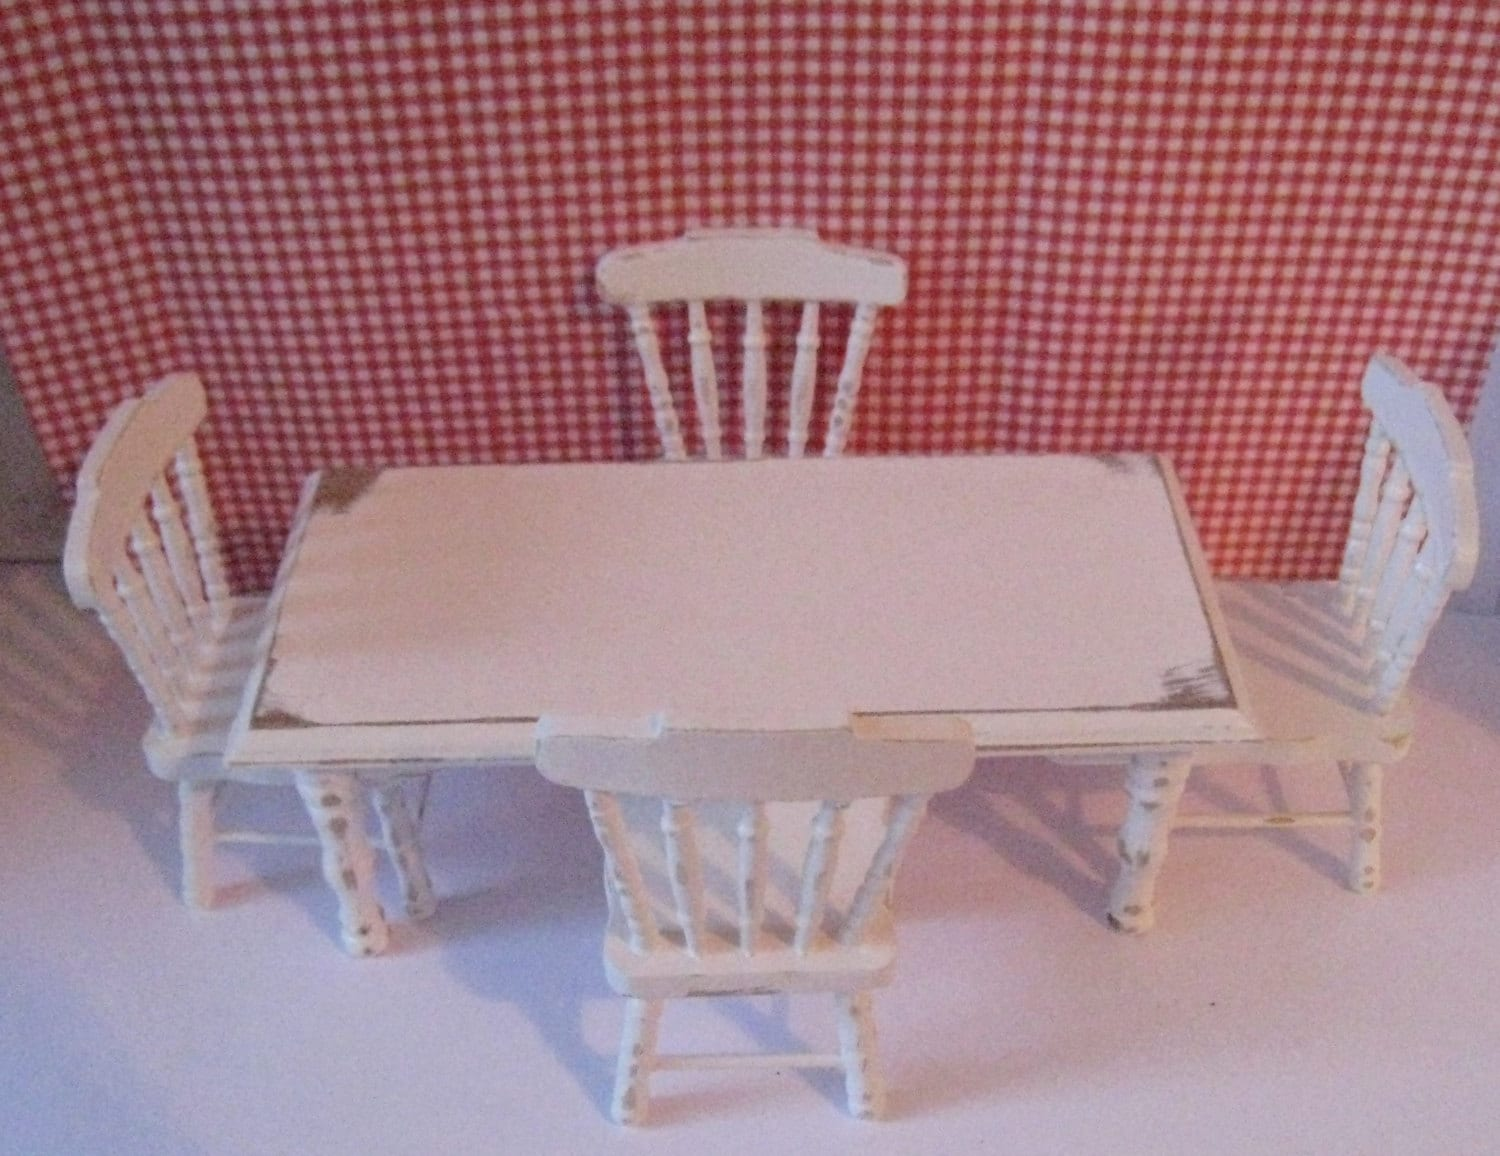 Dollhouse kitchen set tablechairs white set distressed kitchen dollhouse chairs Miniature kitchen twelfth scale